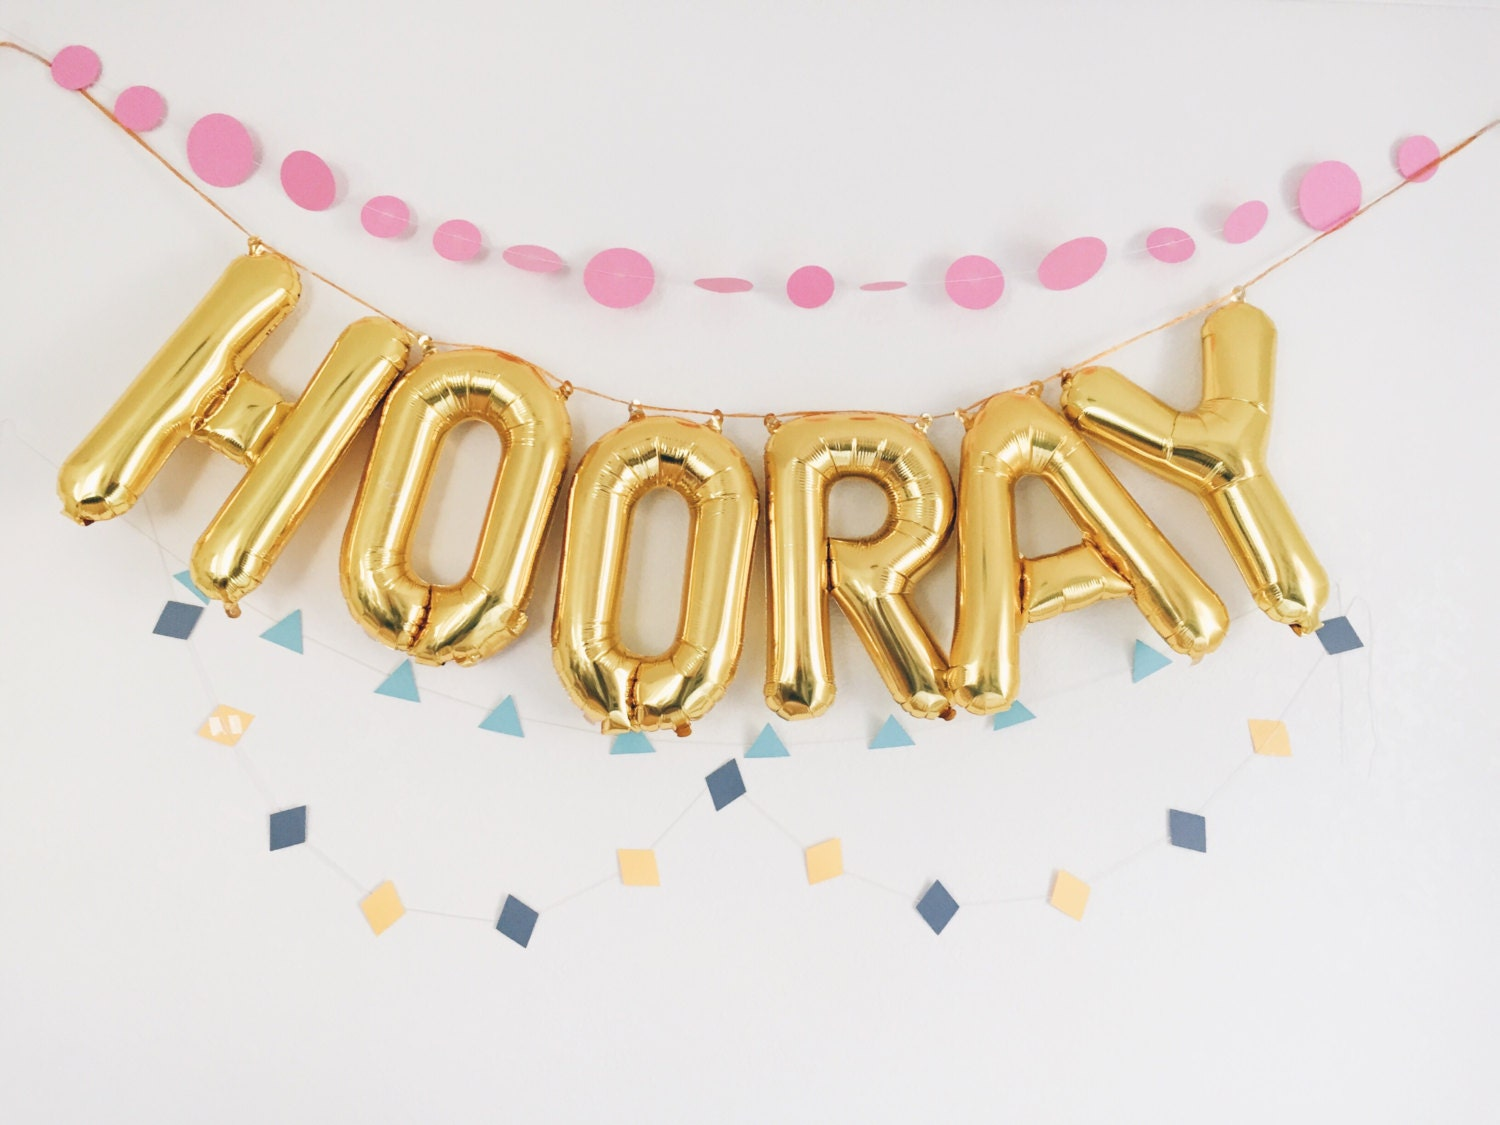 hooray balloons gold mylar foil letter balloon banner kit zoom